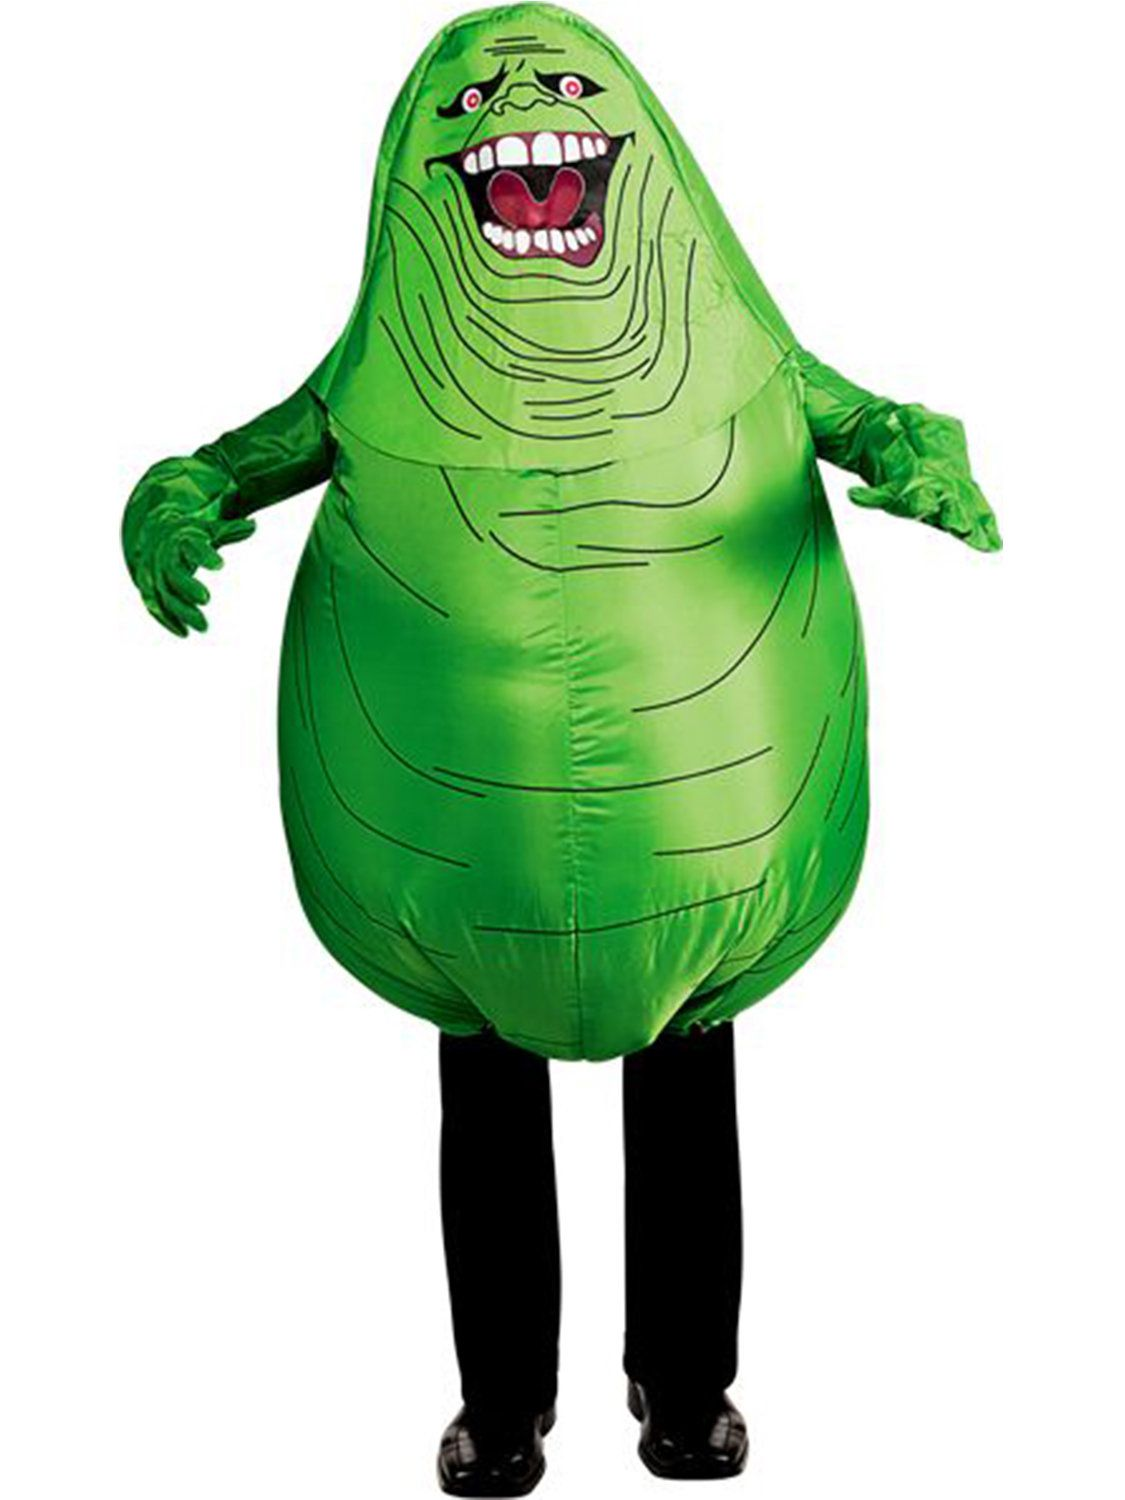 Ghostbusters Inflatable Slimer Menu0027s Costume  sc 1 st  Wholesale Halloween Costumes & Inflatable Slimer Costume - Ghostbusters Mens Costumes